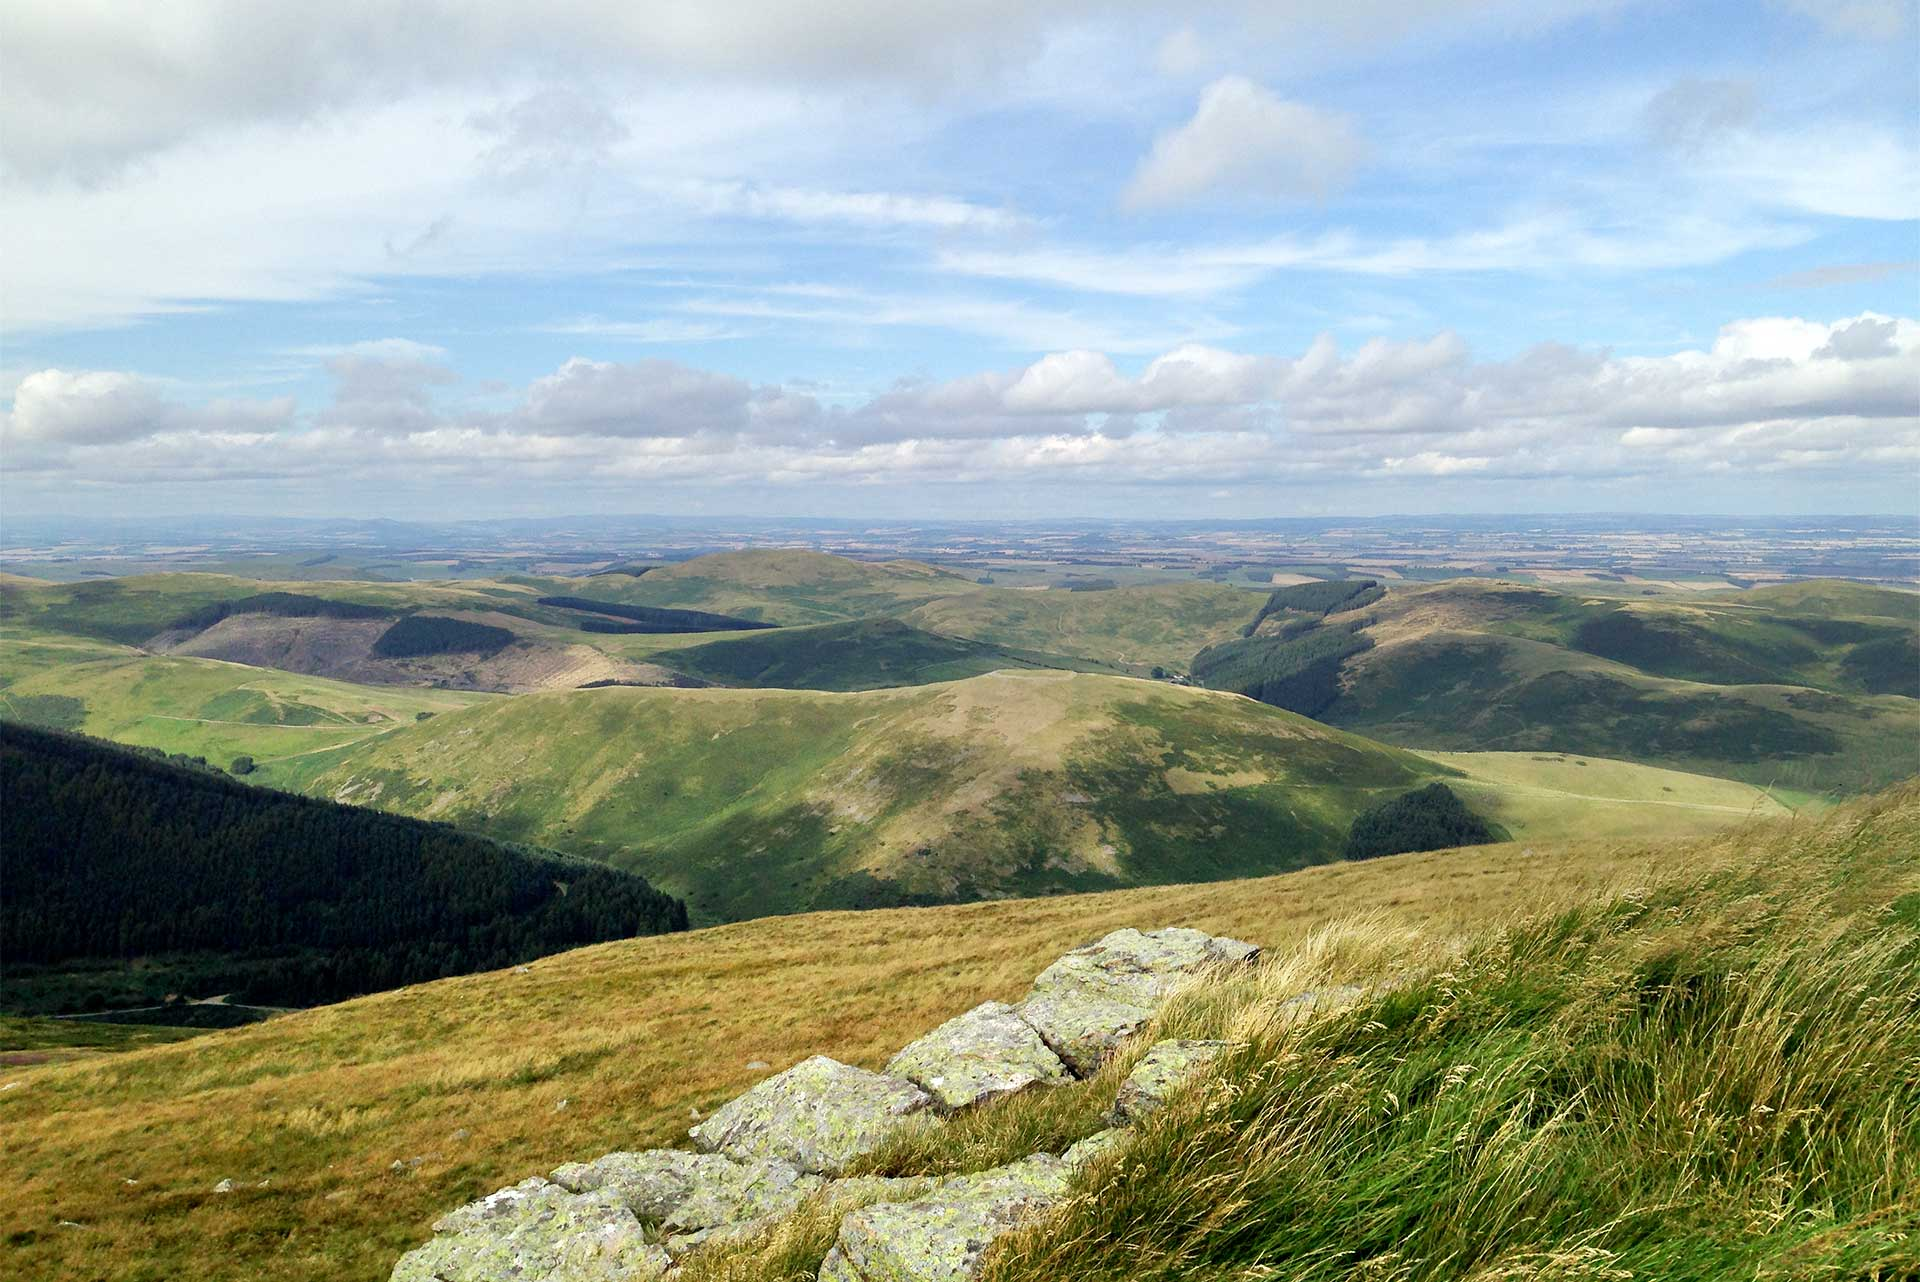 Hare Law view over hills and plain